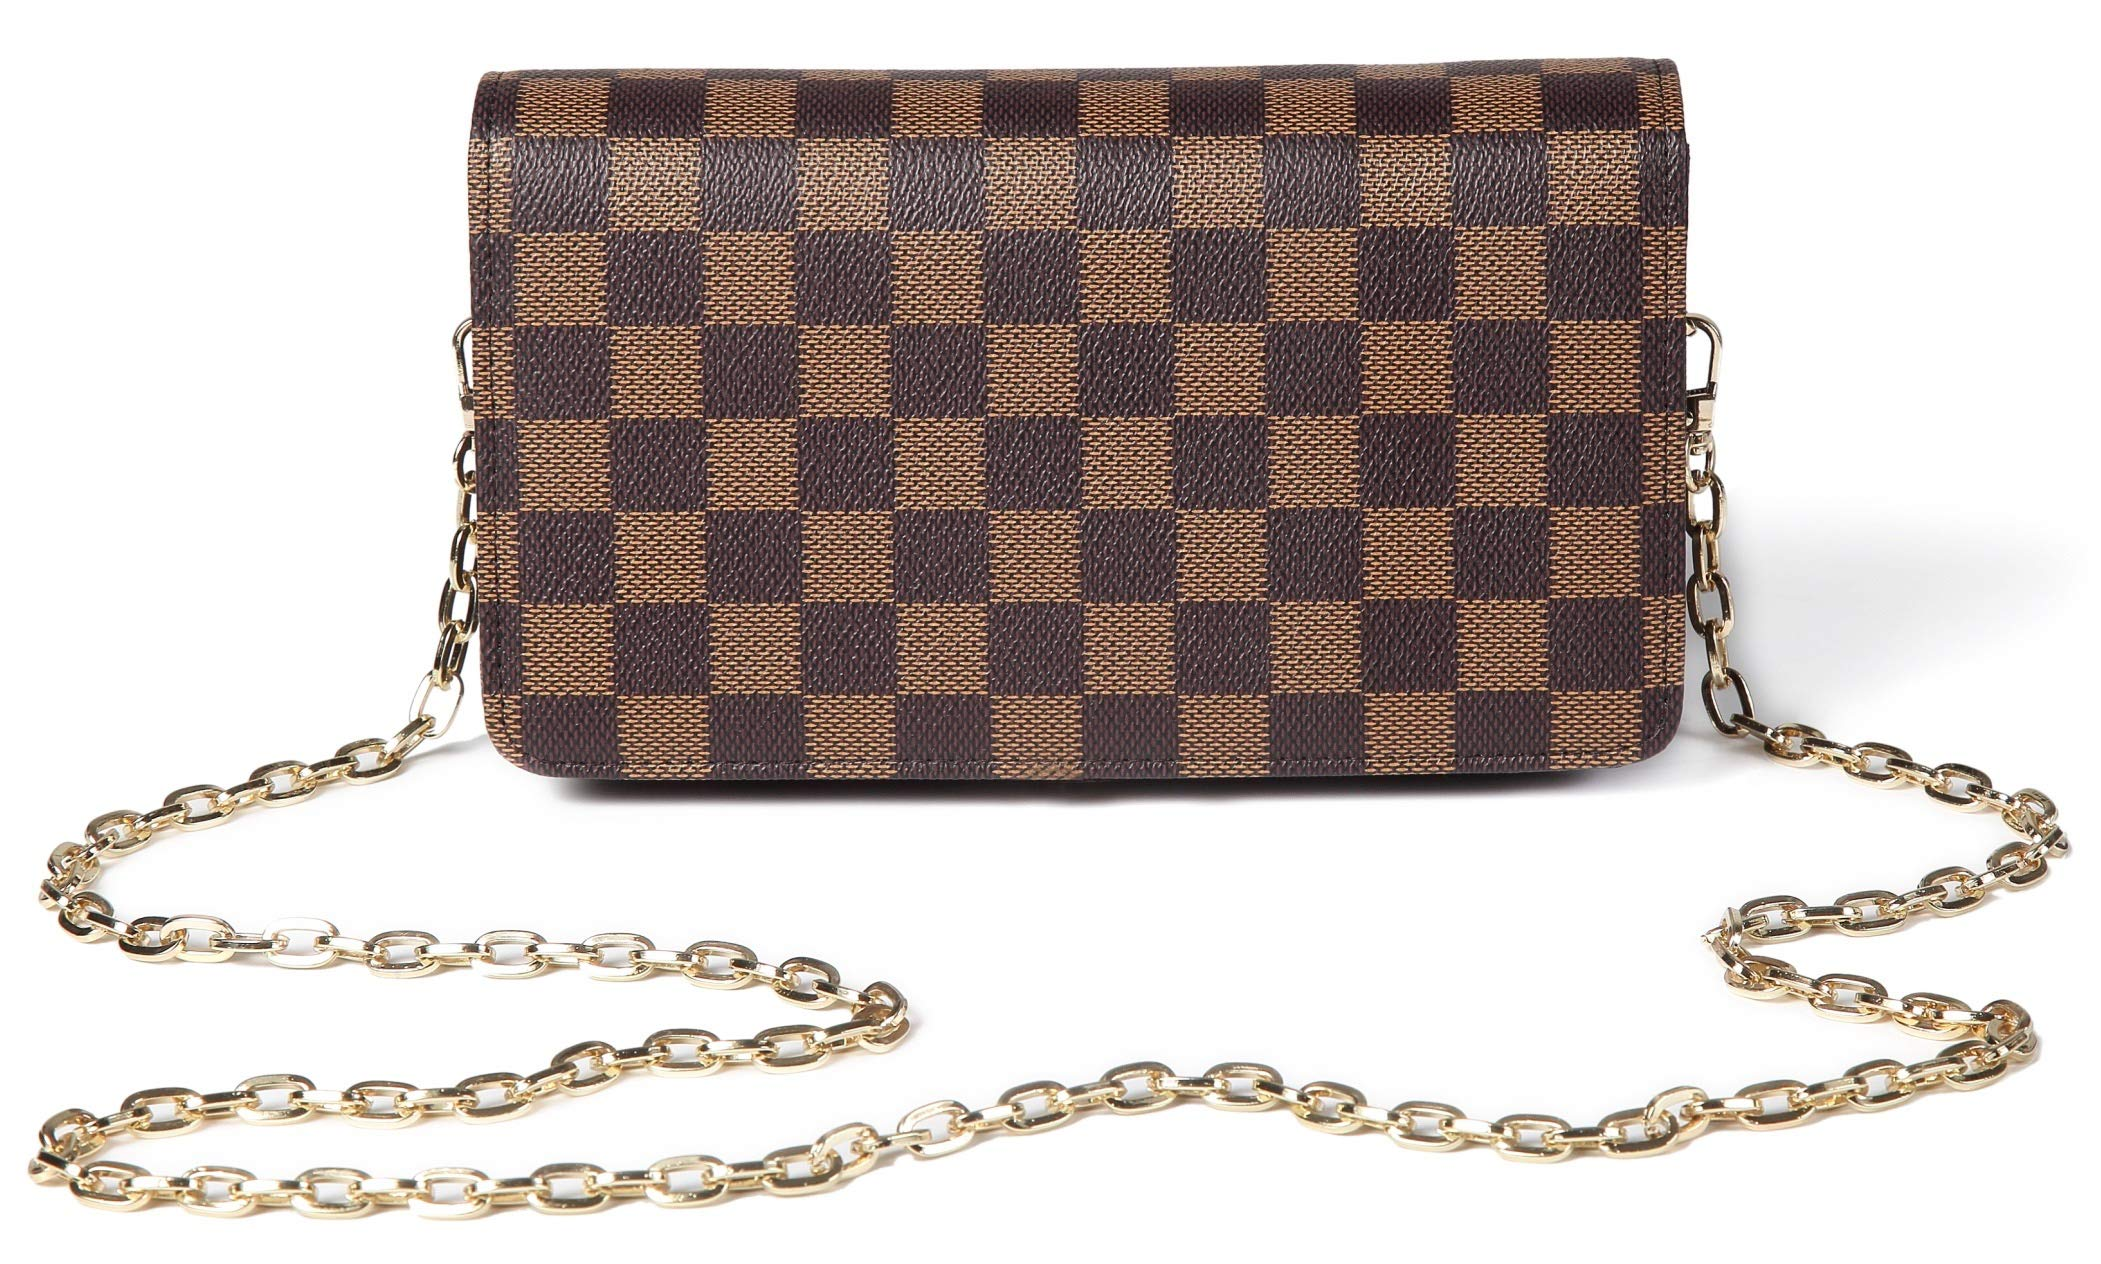 Daisy Rose Checkered Cross body bag - RFID Blocking with Credit Card slots clutch -PU Vegan Leather (BROWN)